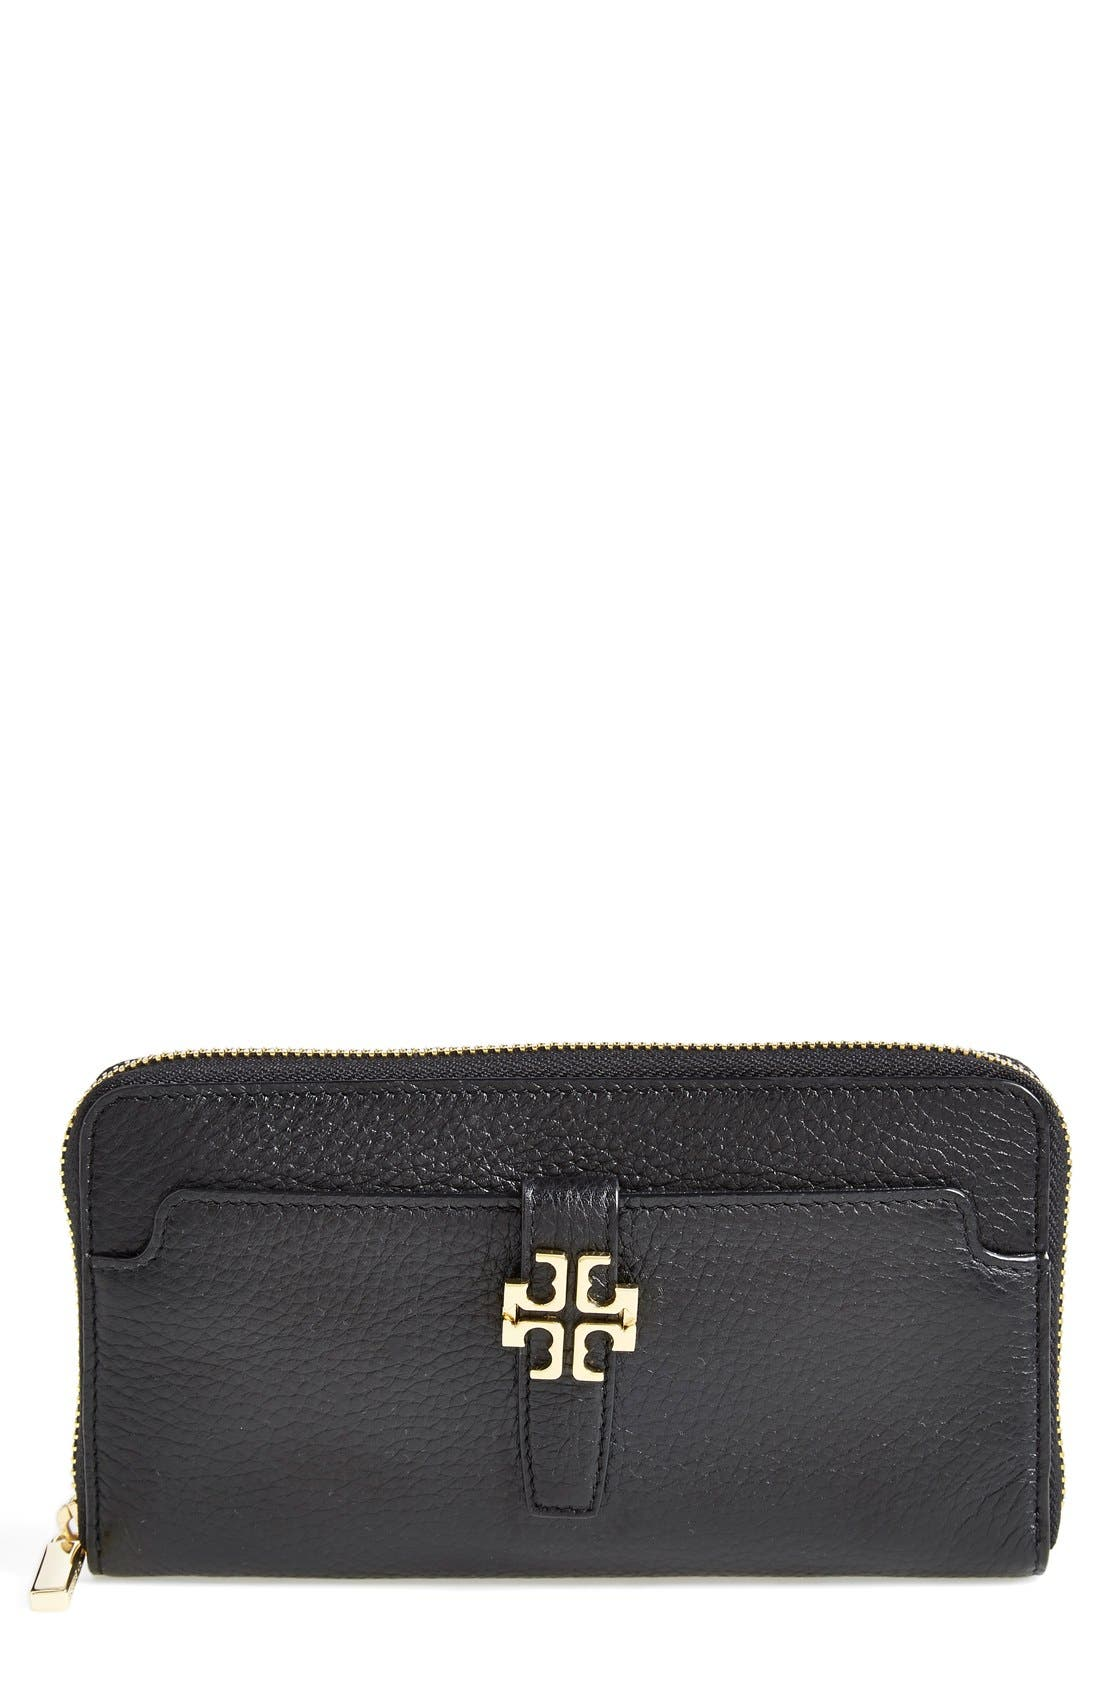 Main Image - Tory Burch 'Plaque' Zip Continental Wallet